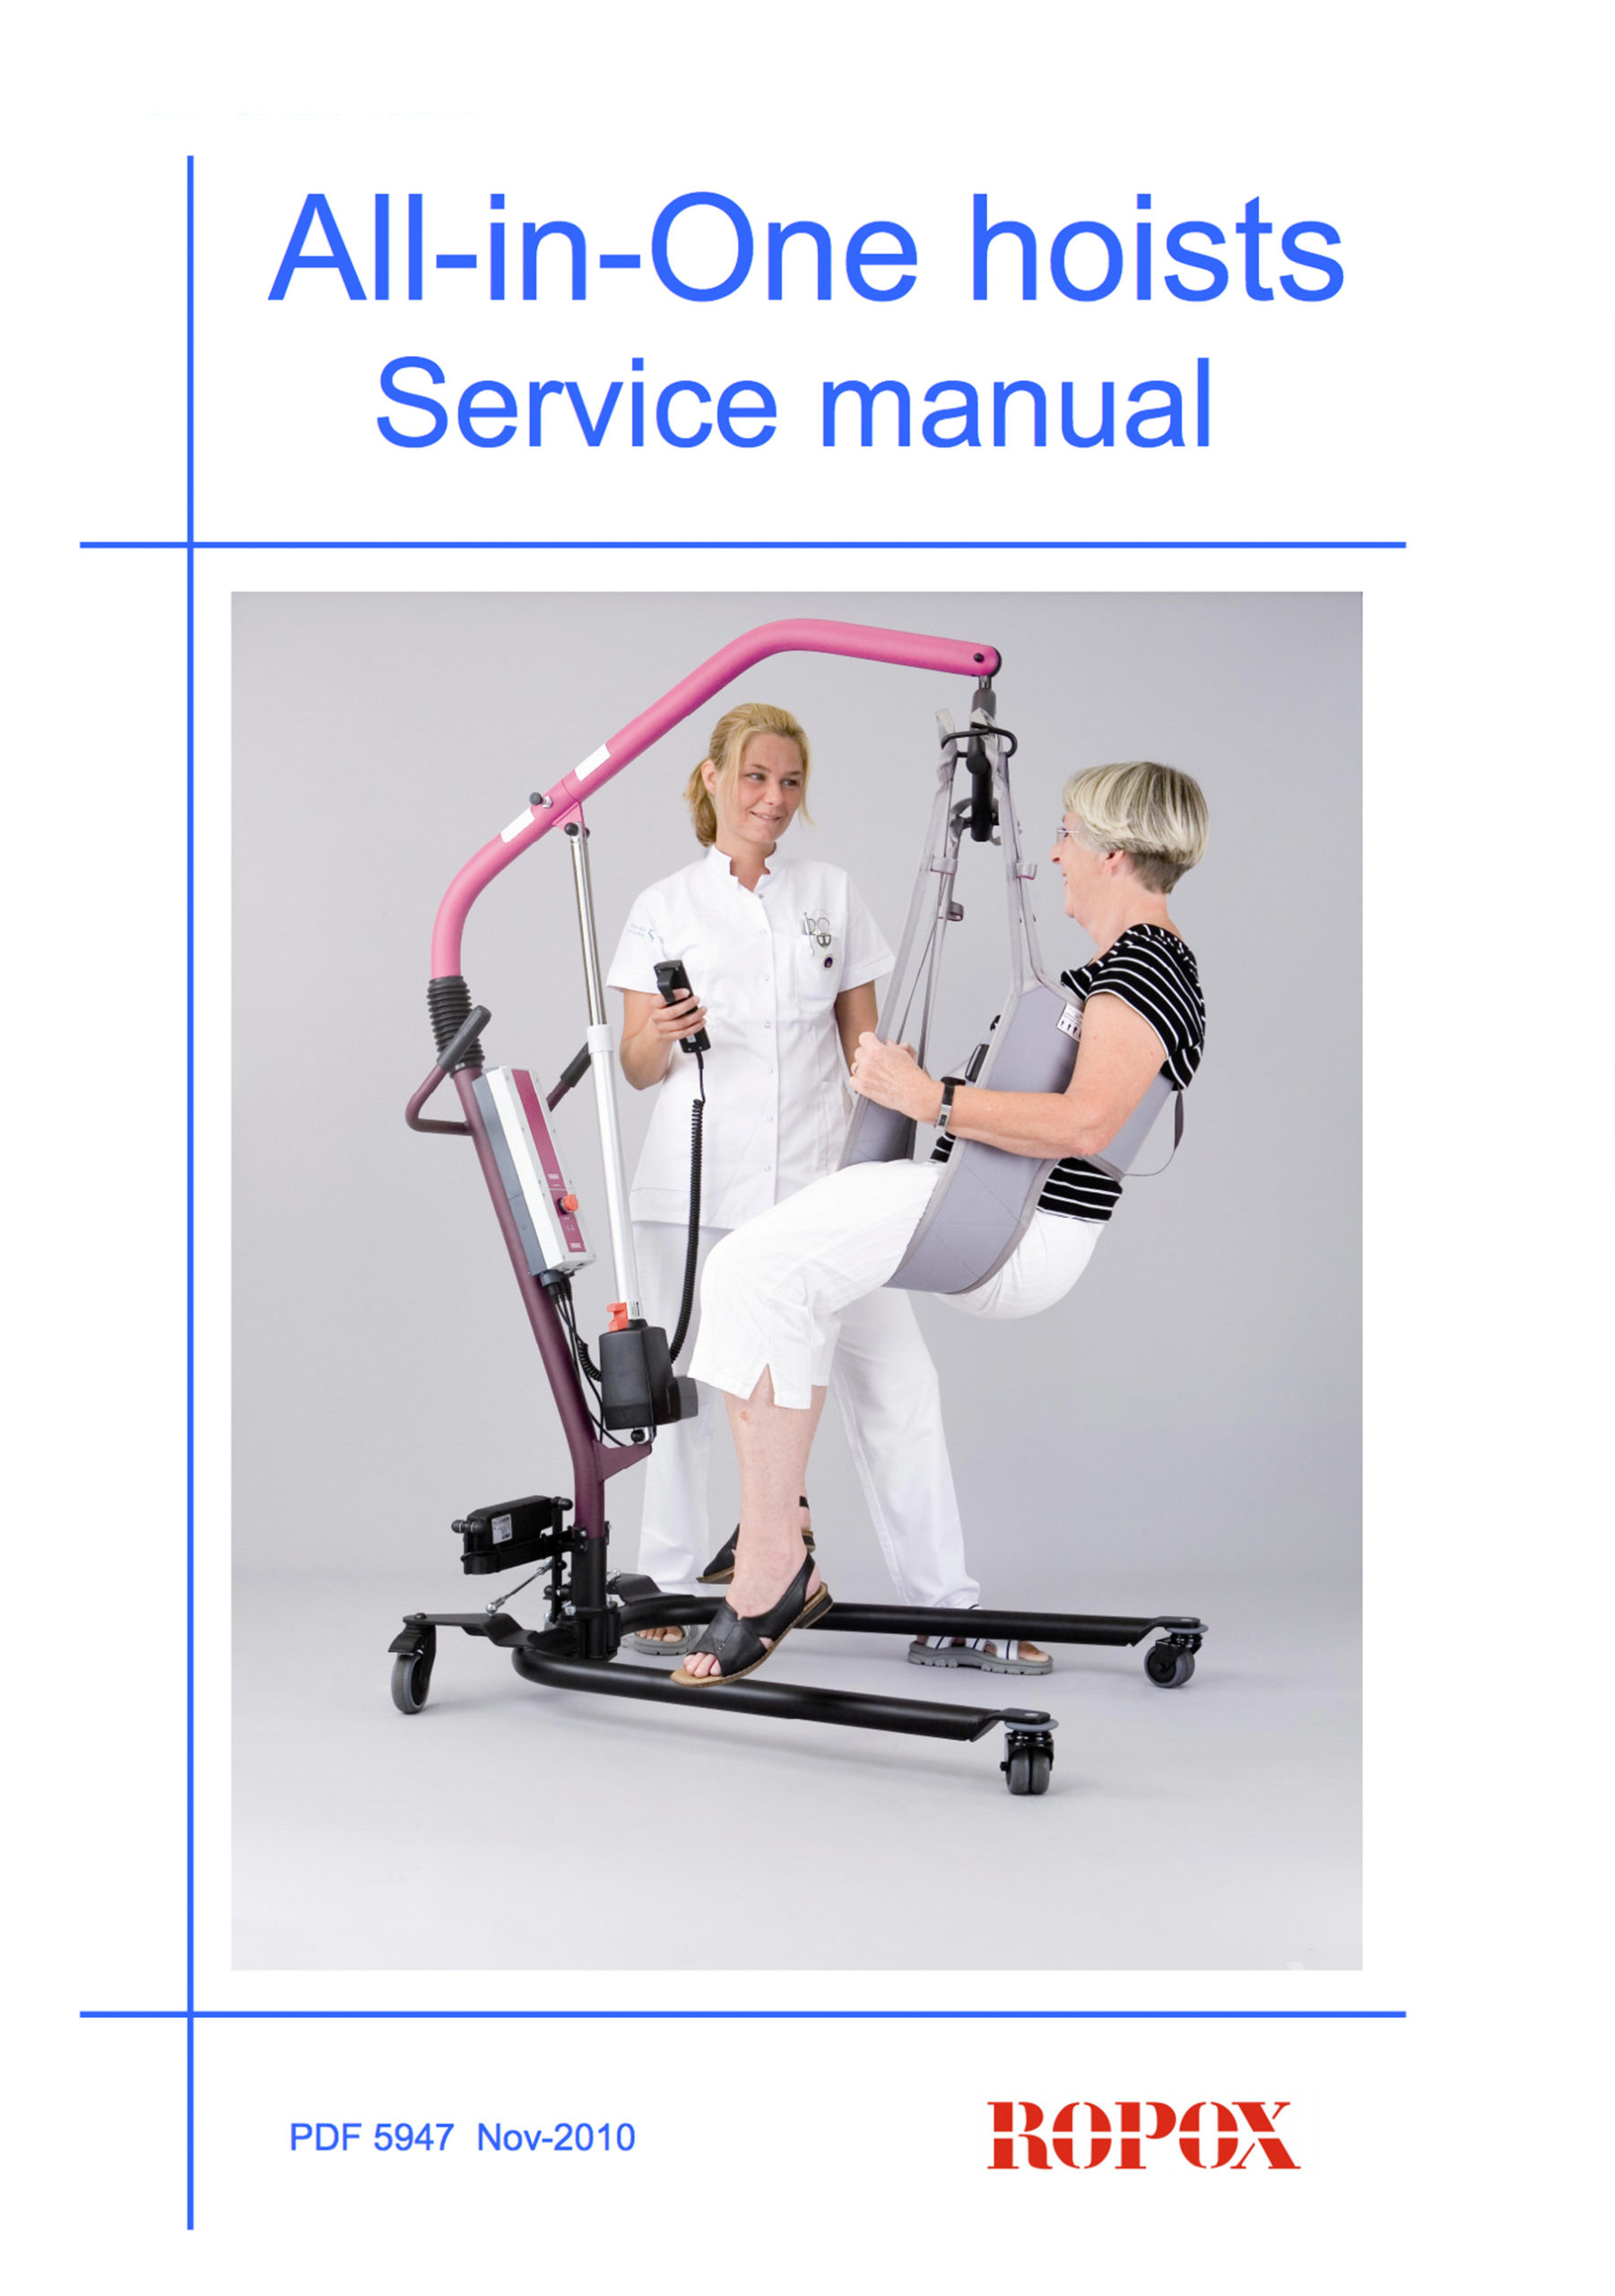 All-in-One hoists Service manual